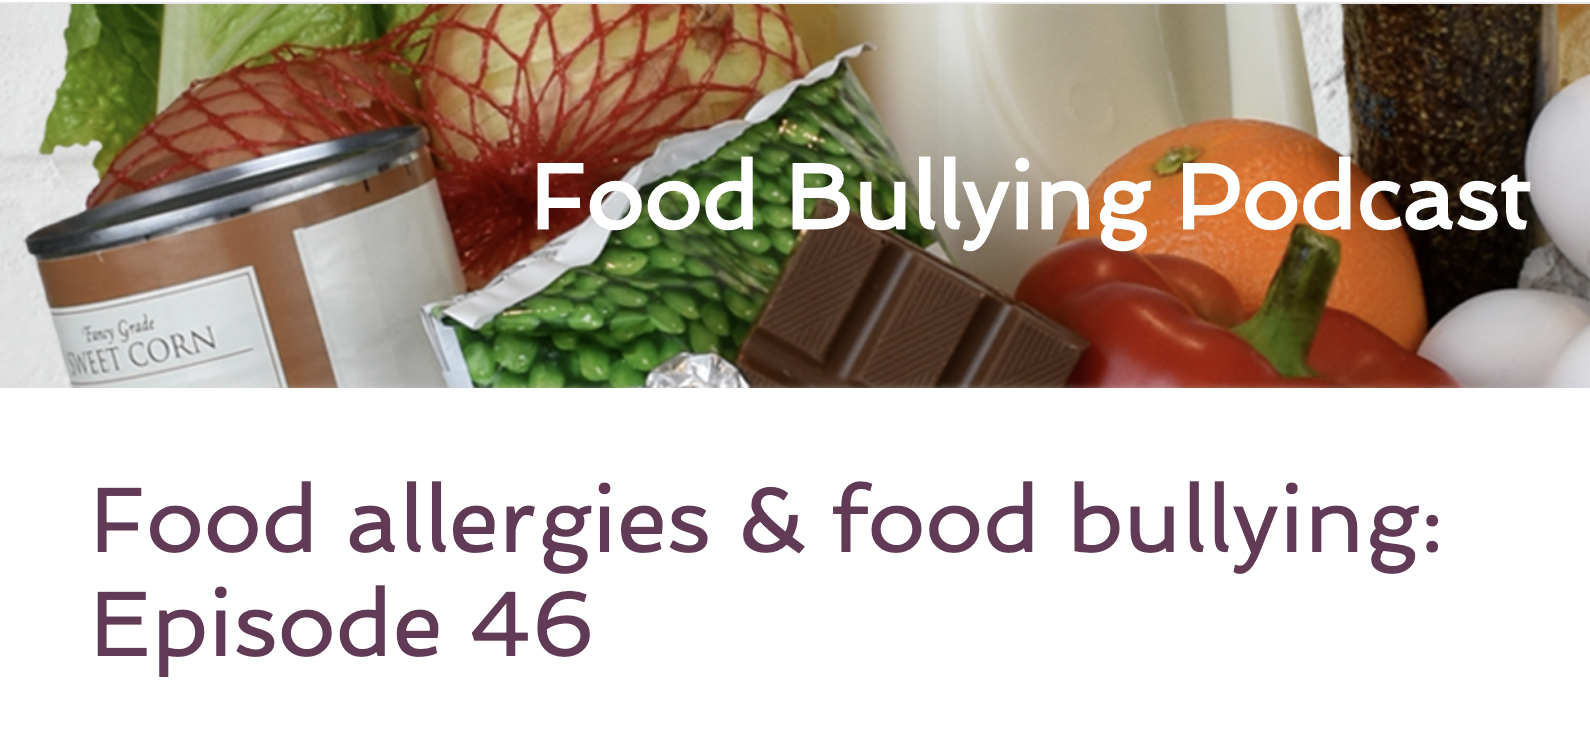 Food Bullying Podcast Episode 46 Food Allergies and Food Bullying video